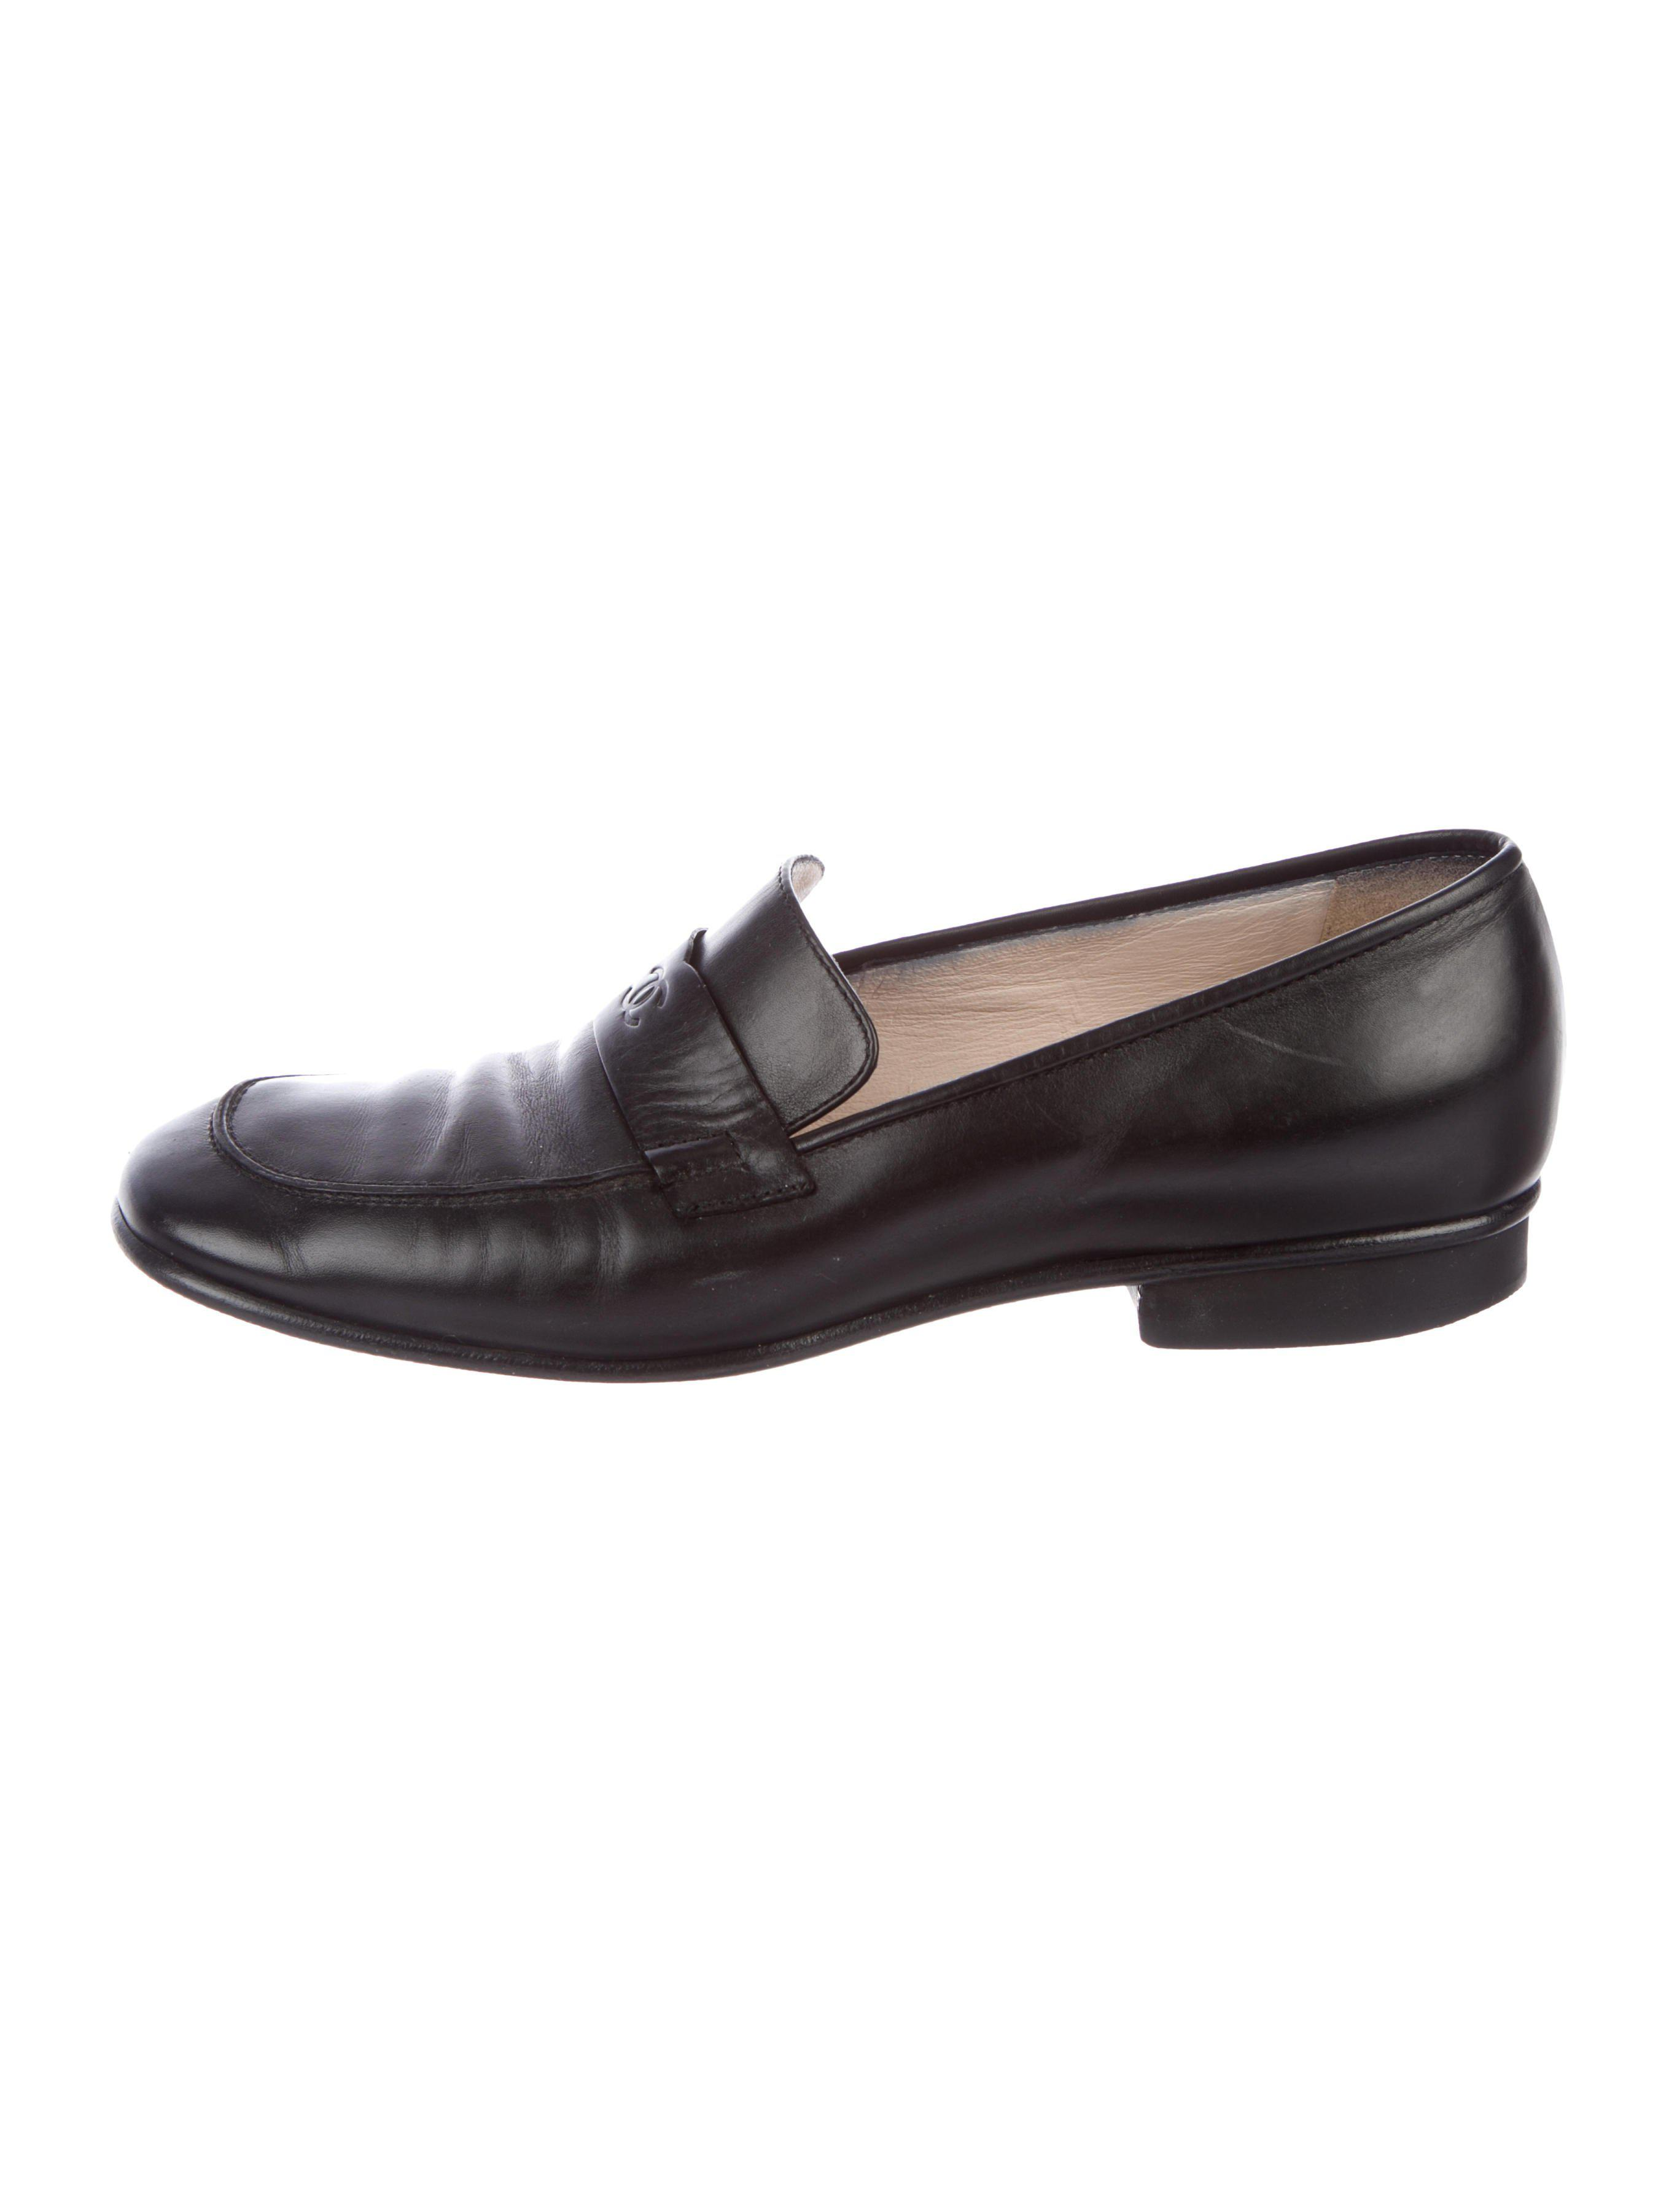 f65a361cc59 Lyst - Chanel Leather Cc Loafers in Black